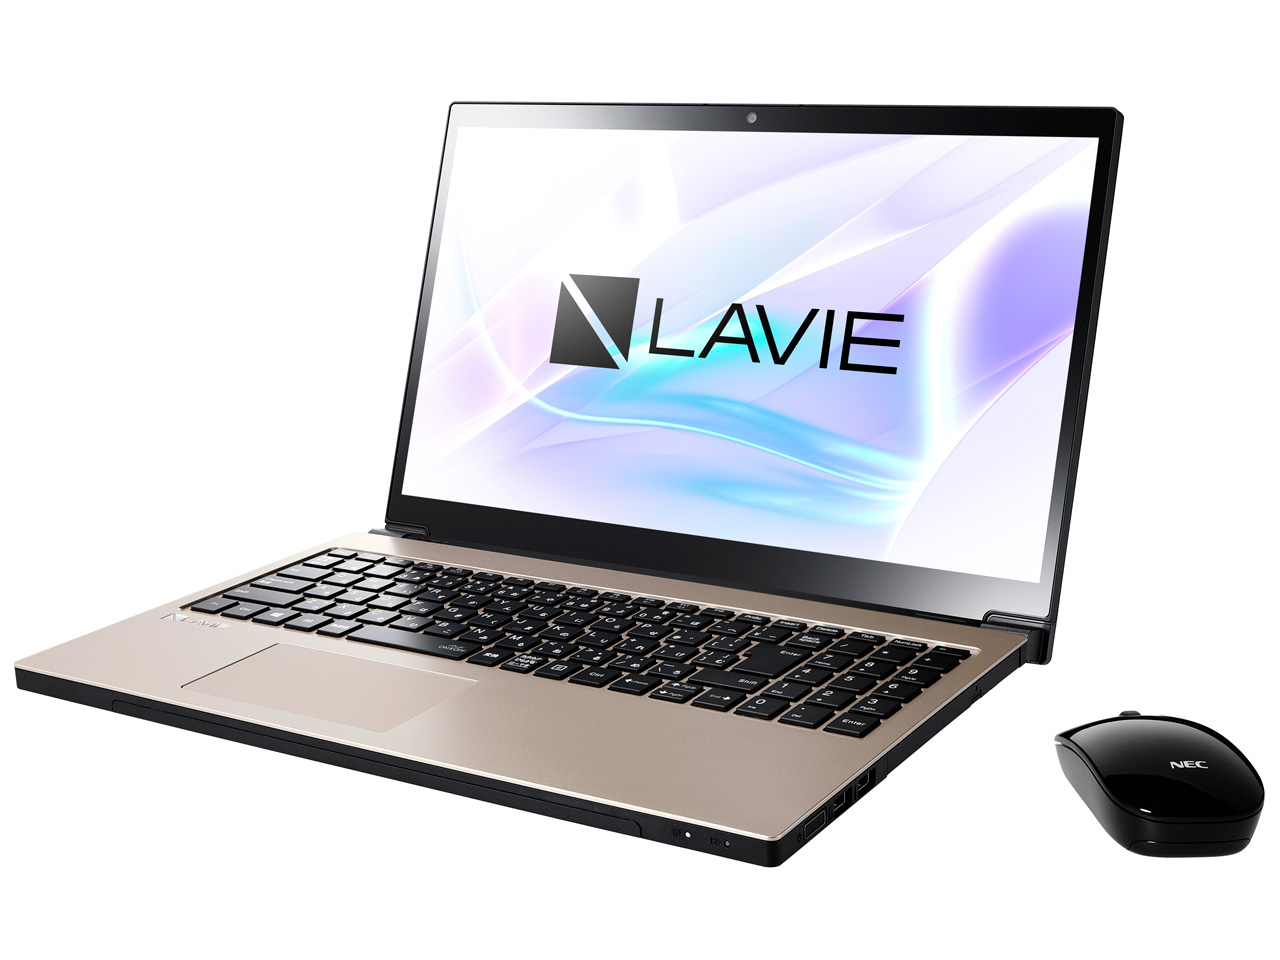 LAVIE Note NEXT NX750/LAG PC-NX750LAG [クレストゴールド]